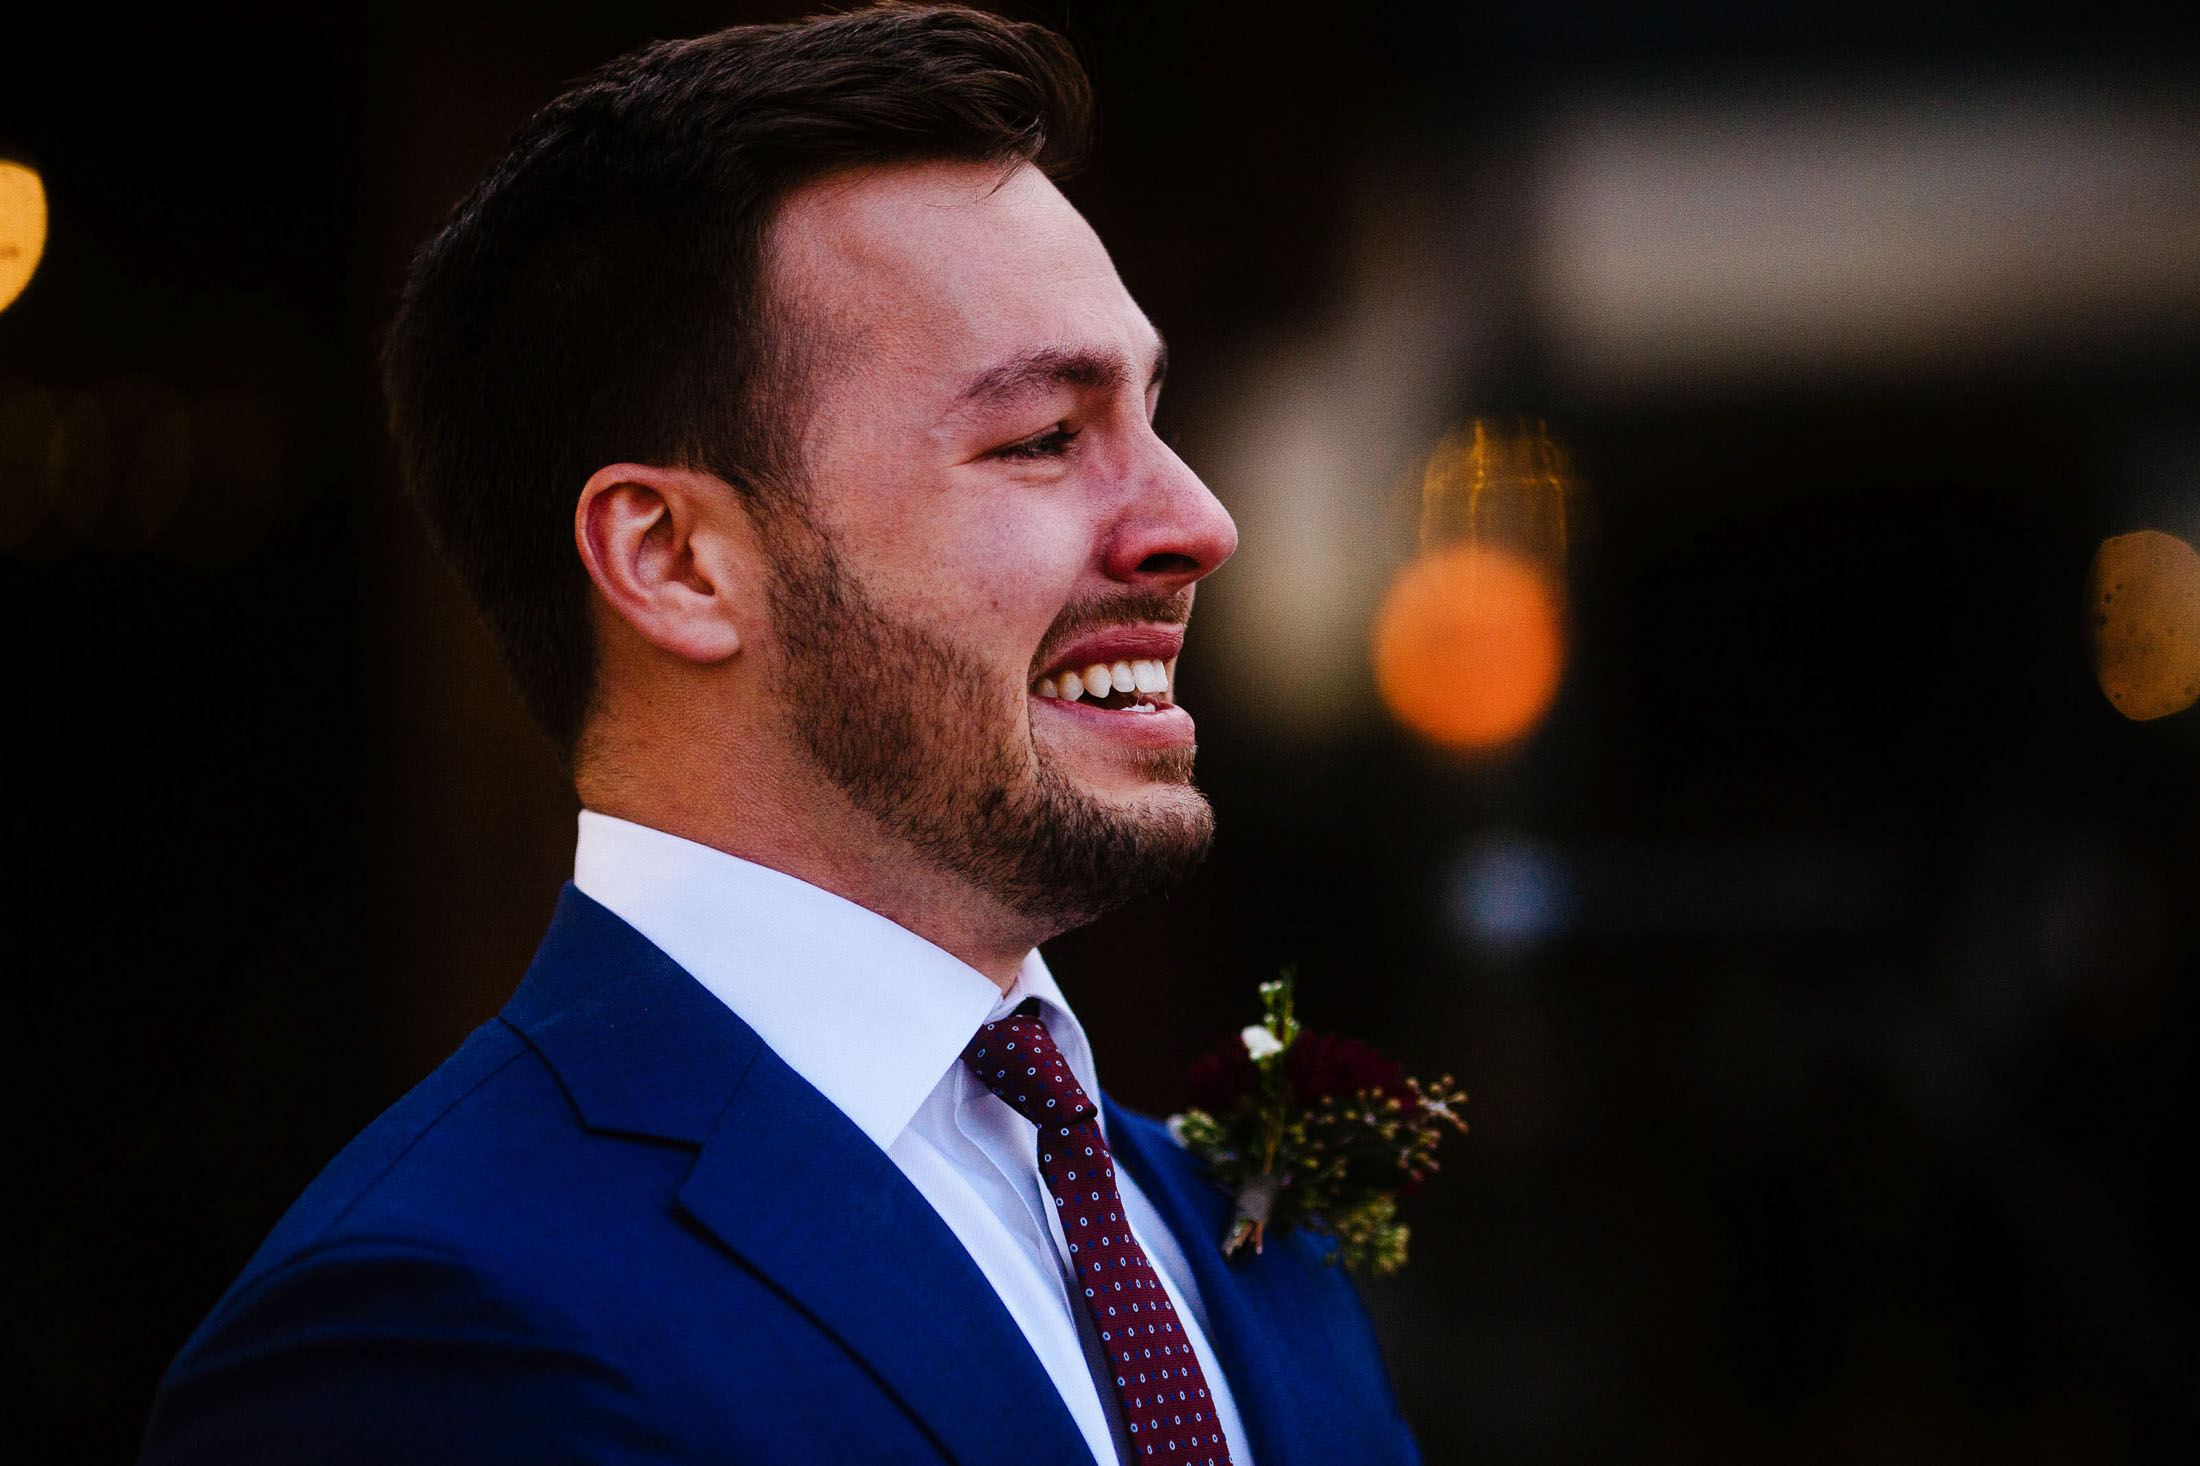 Close-up of groom cyring when he sees bride for the first time during wedding ceremony.